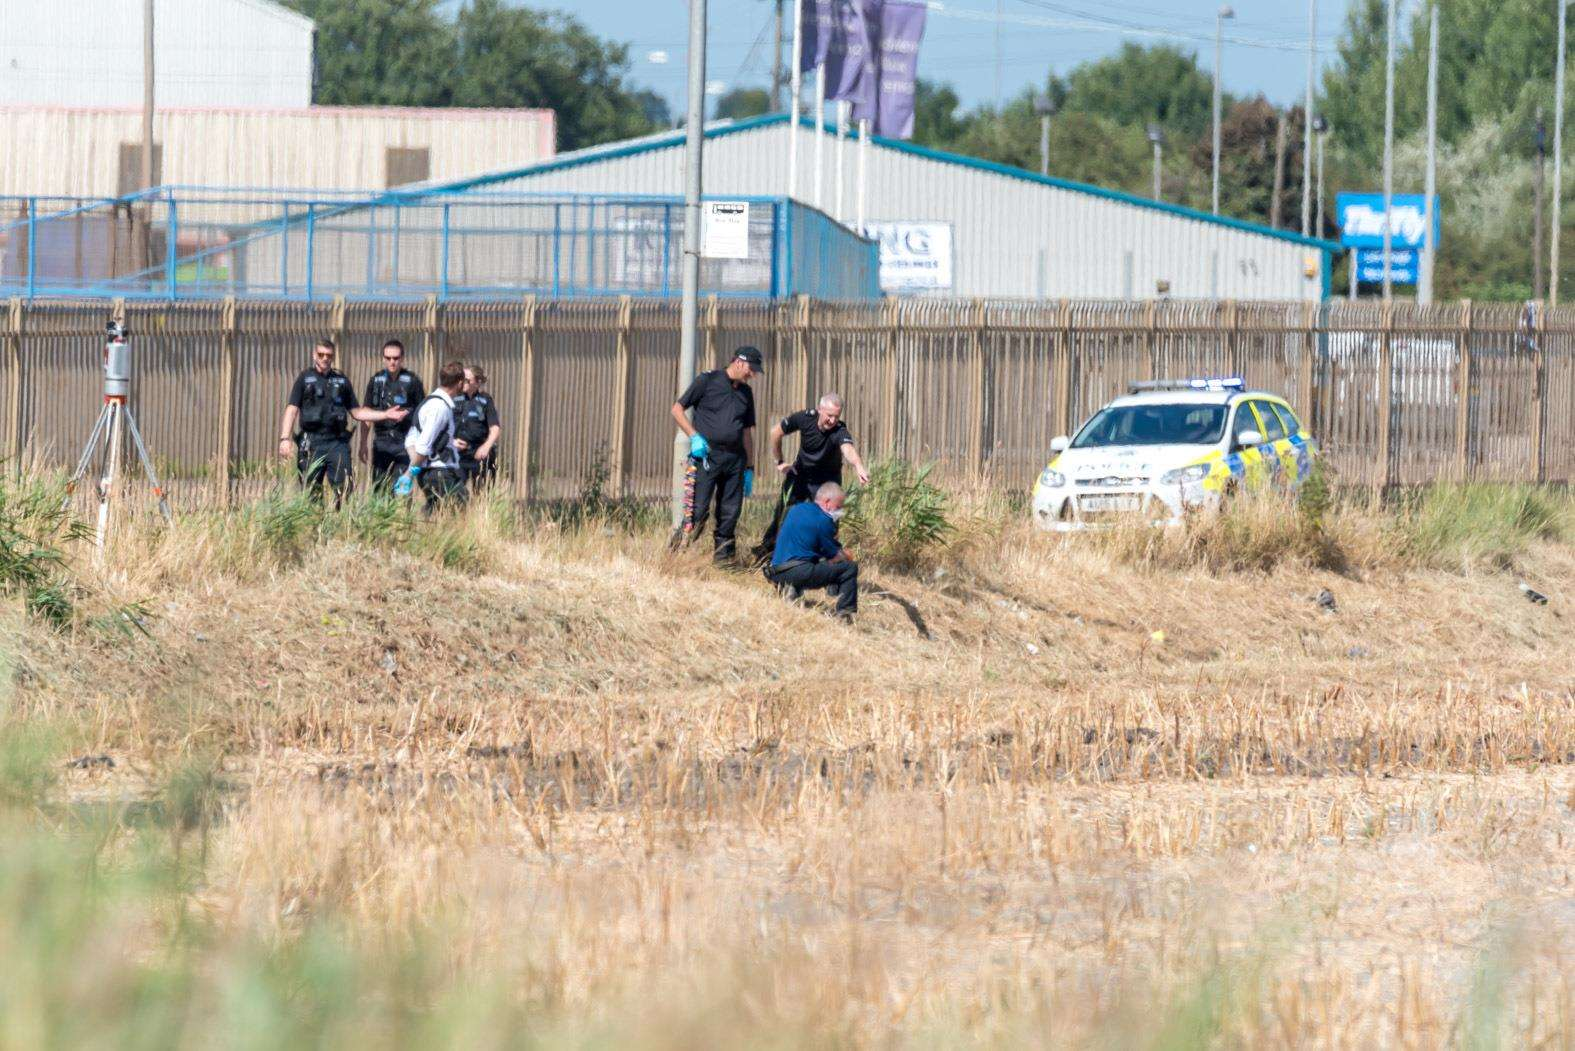 Police crime scene investigations underway after a body is discovered in a ditch close to the Police Investigation Centre at Saddlebow. (3253309)